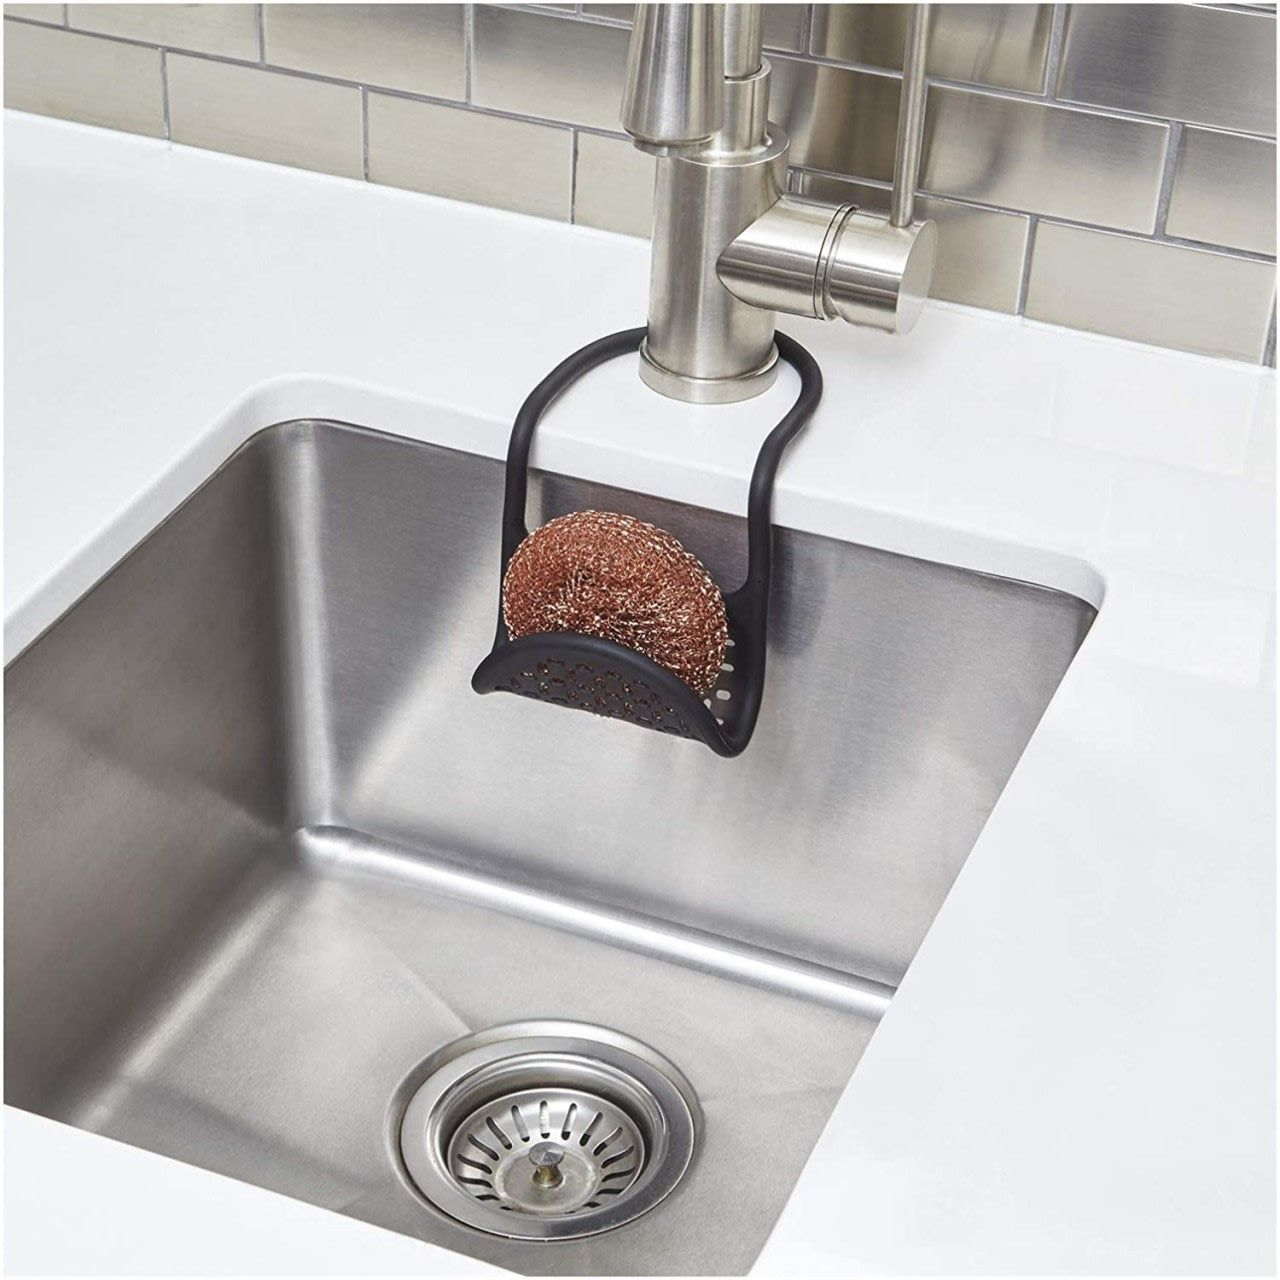 Hanging sponge holder as low as 498 a coupon